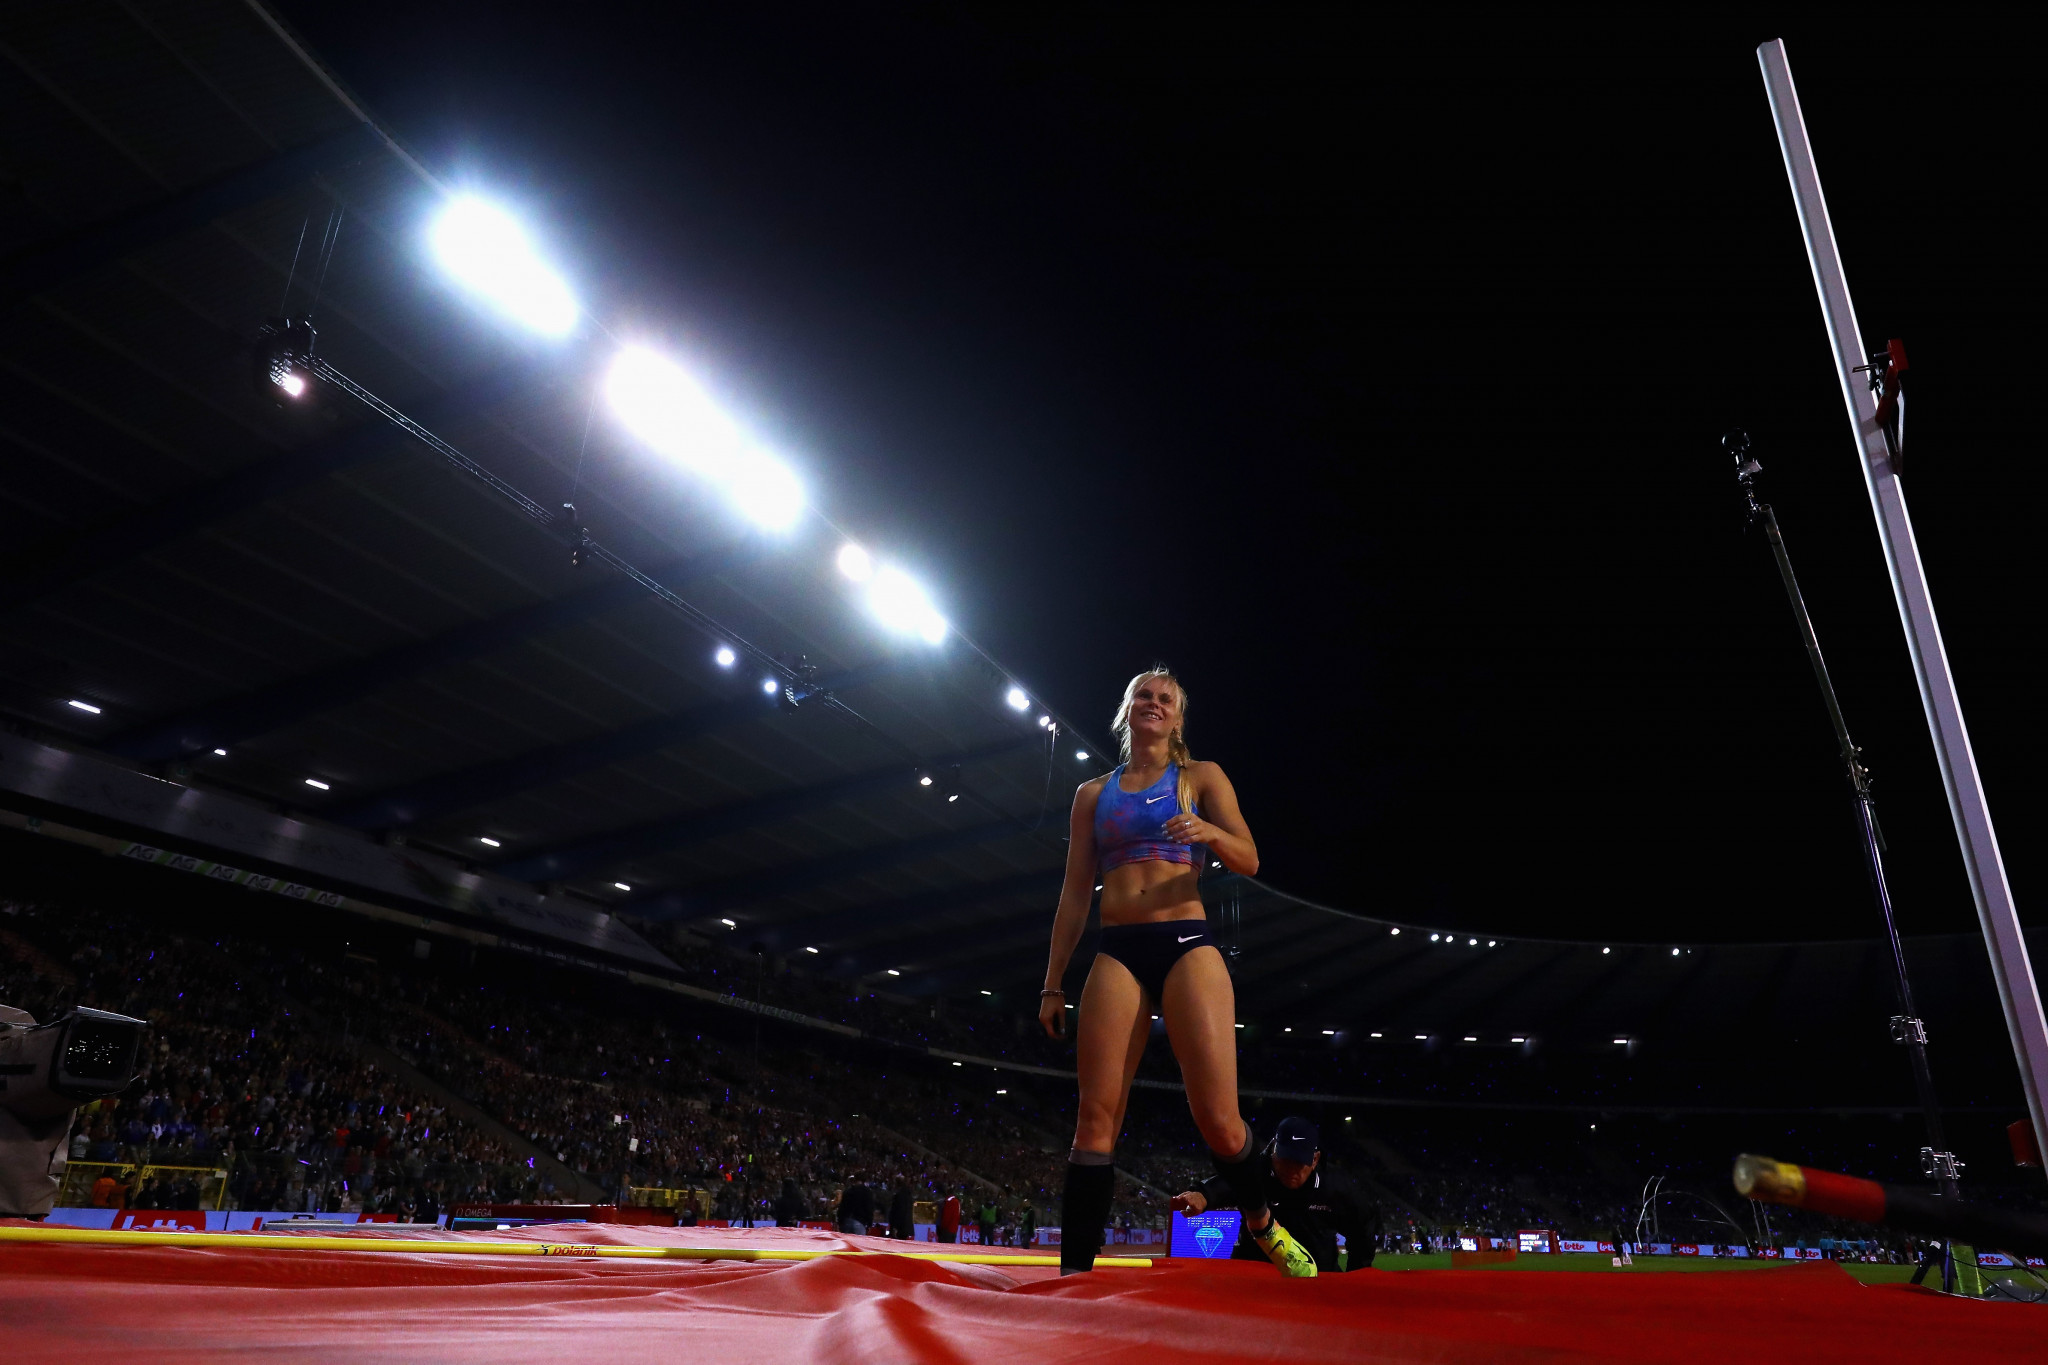 The Brussels Diamond League meeting will not have fans present this year ©Getty Images